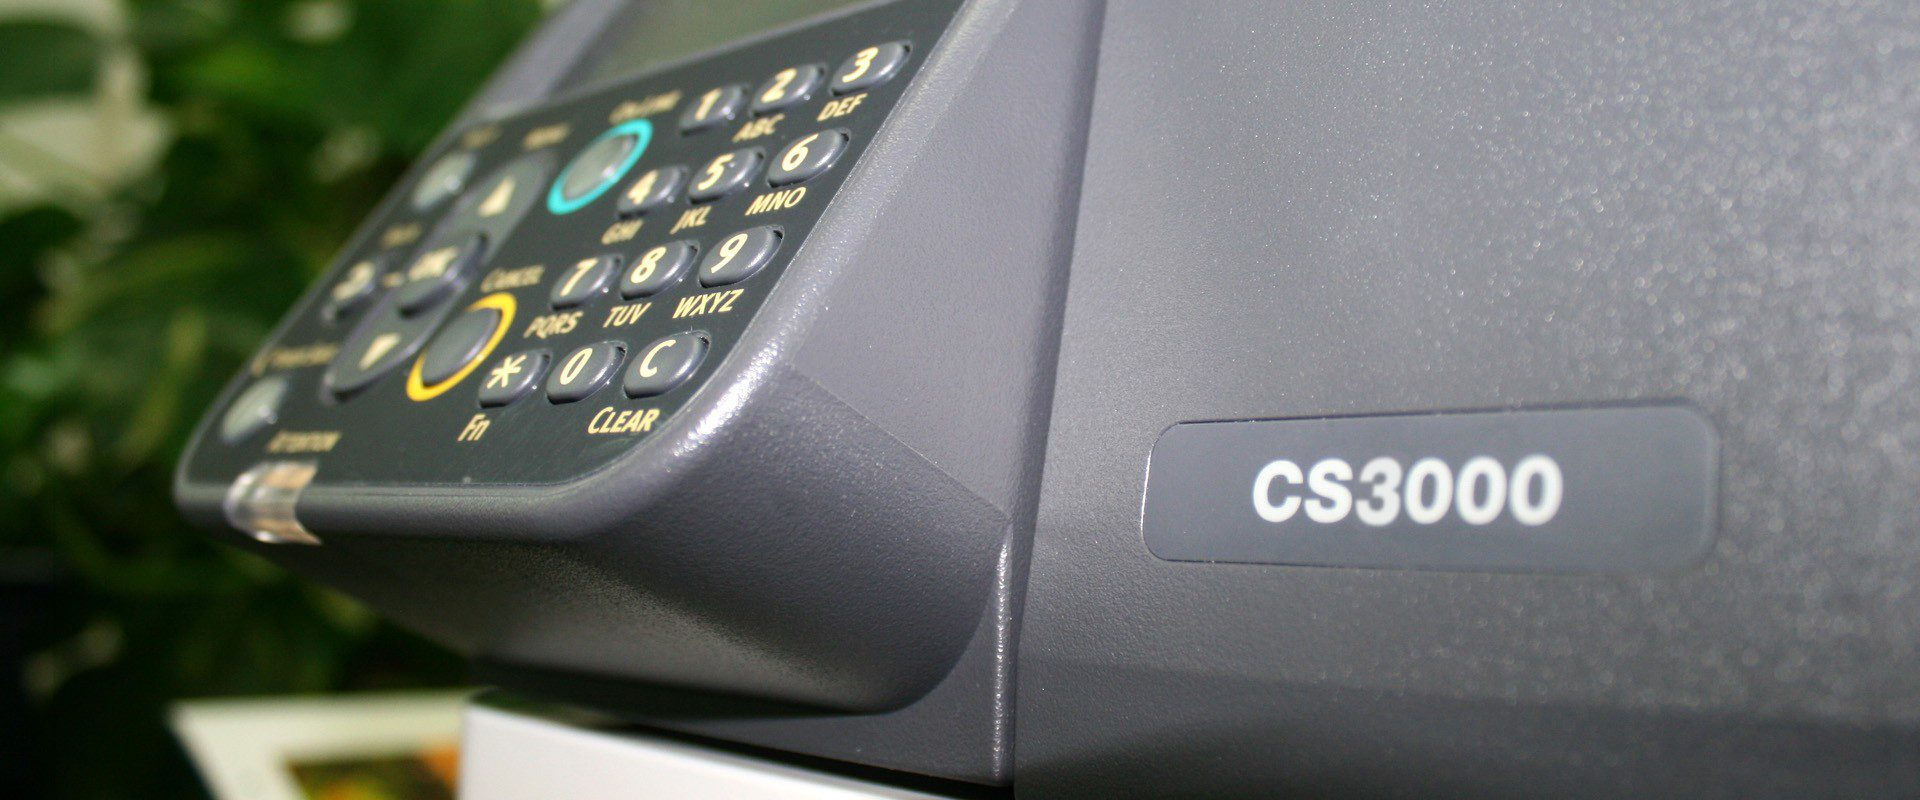 Intec ColorSplash CS3000 digital printer